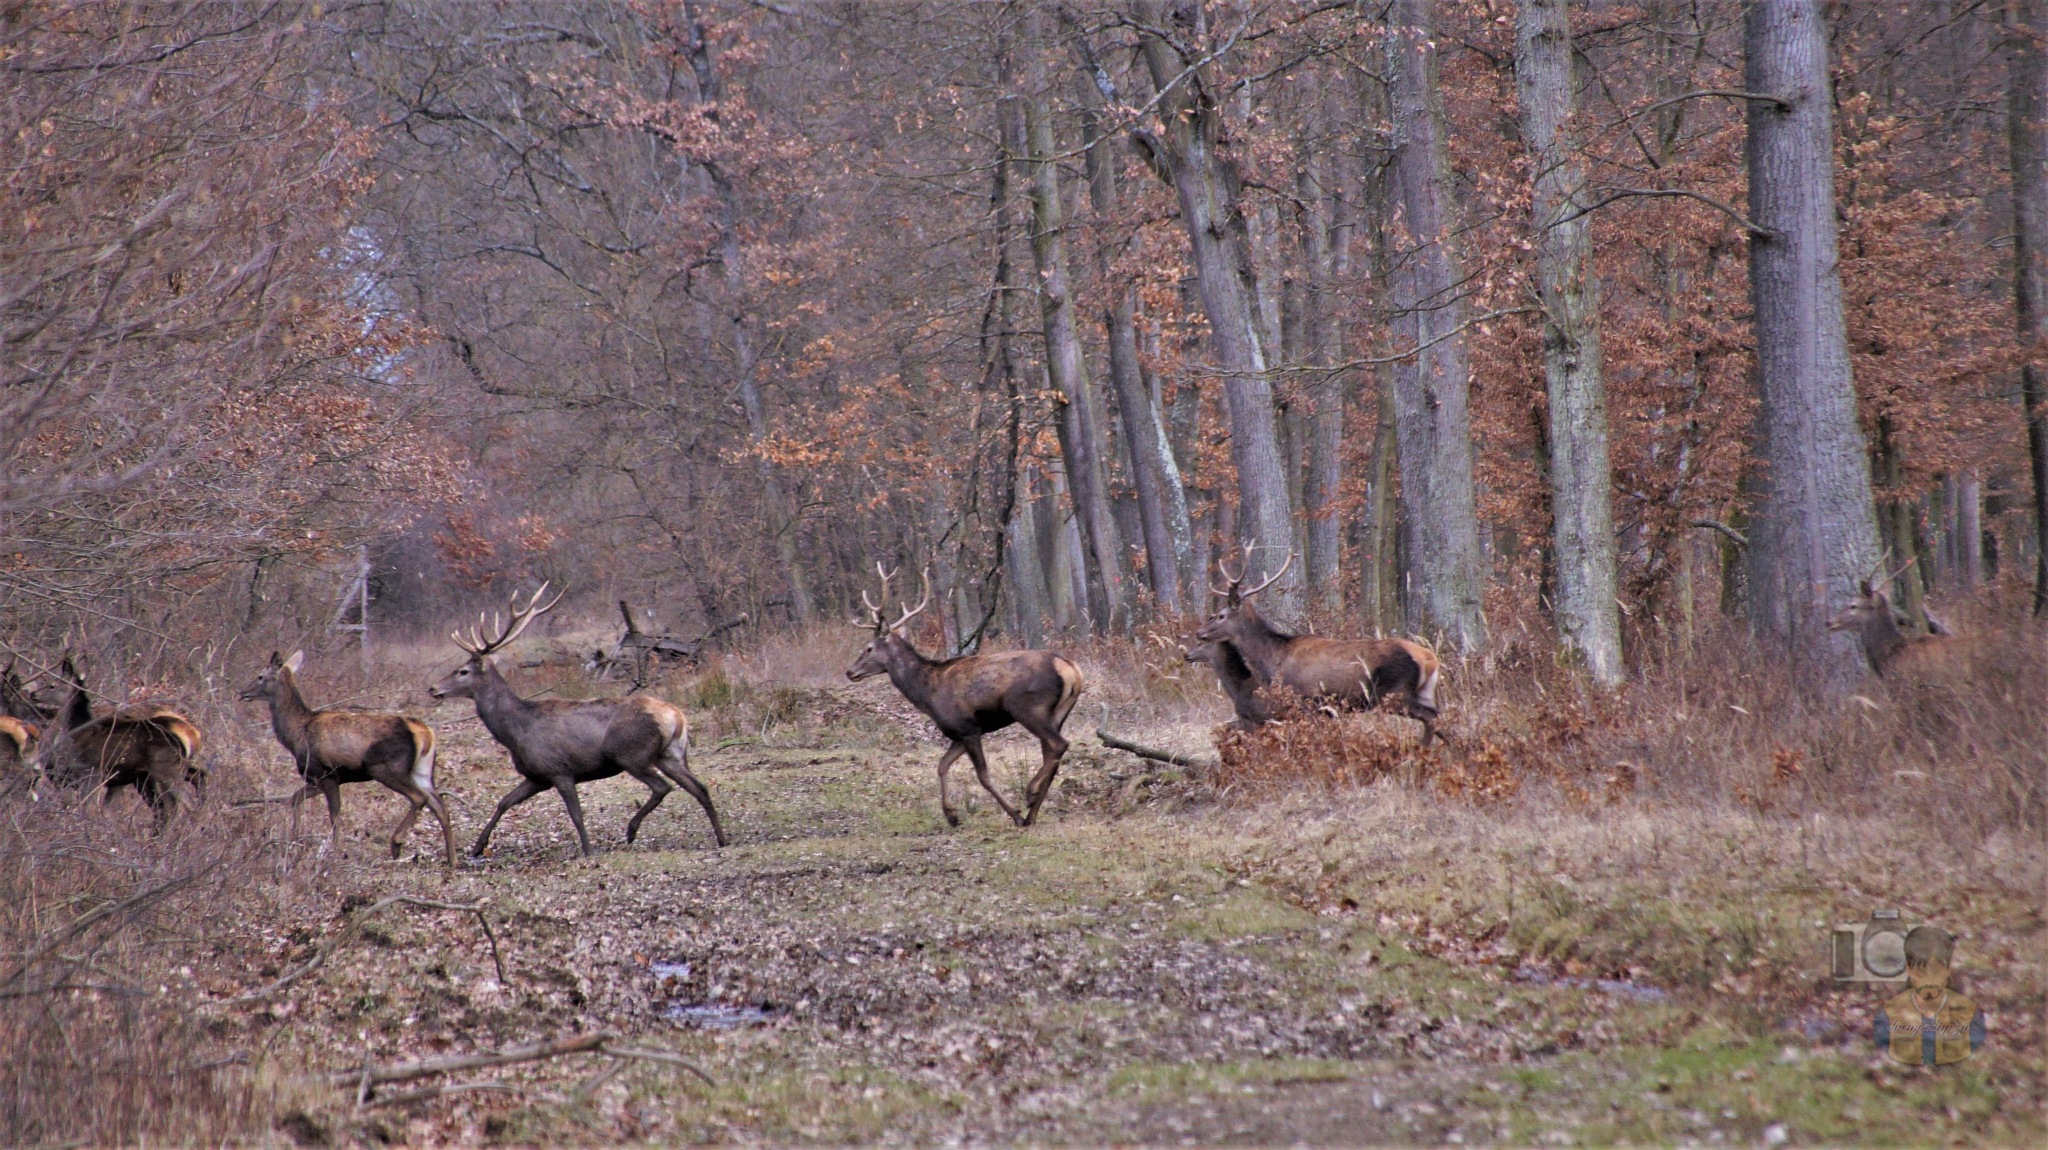 February 14, today, red deers on forest path by hunyadigeza